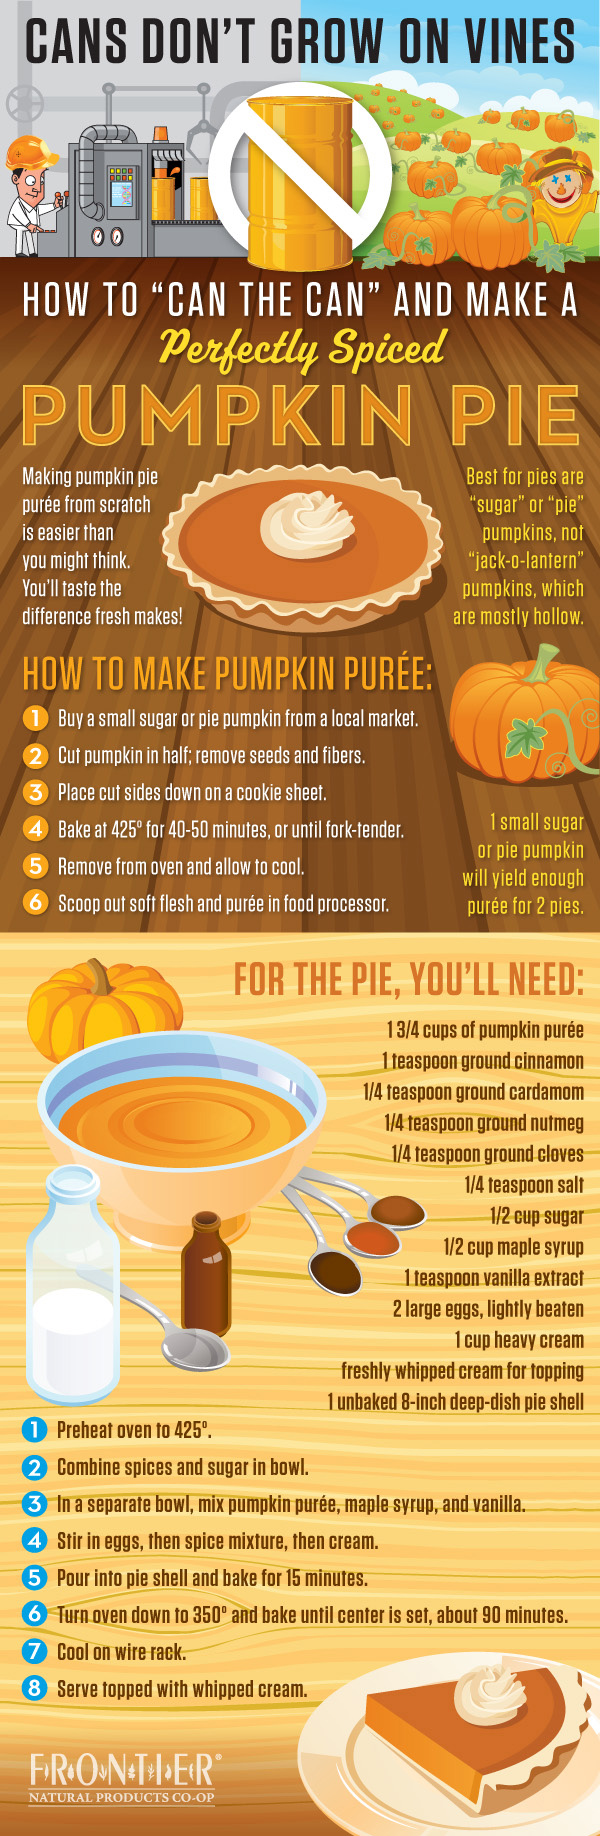 How to make a pumpkin pie from scratch [Infographic] | Las ...